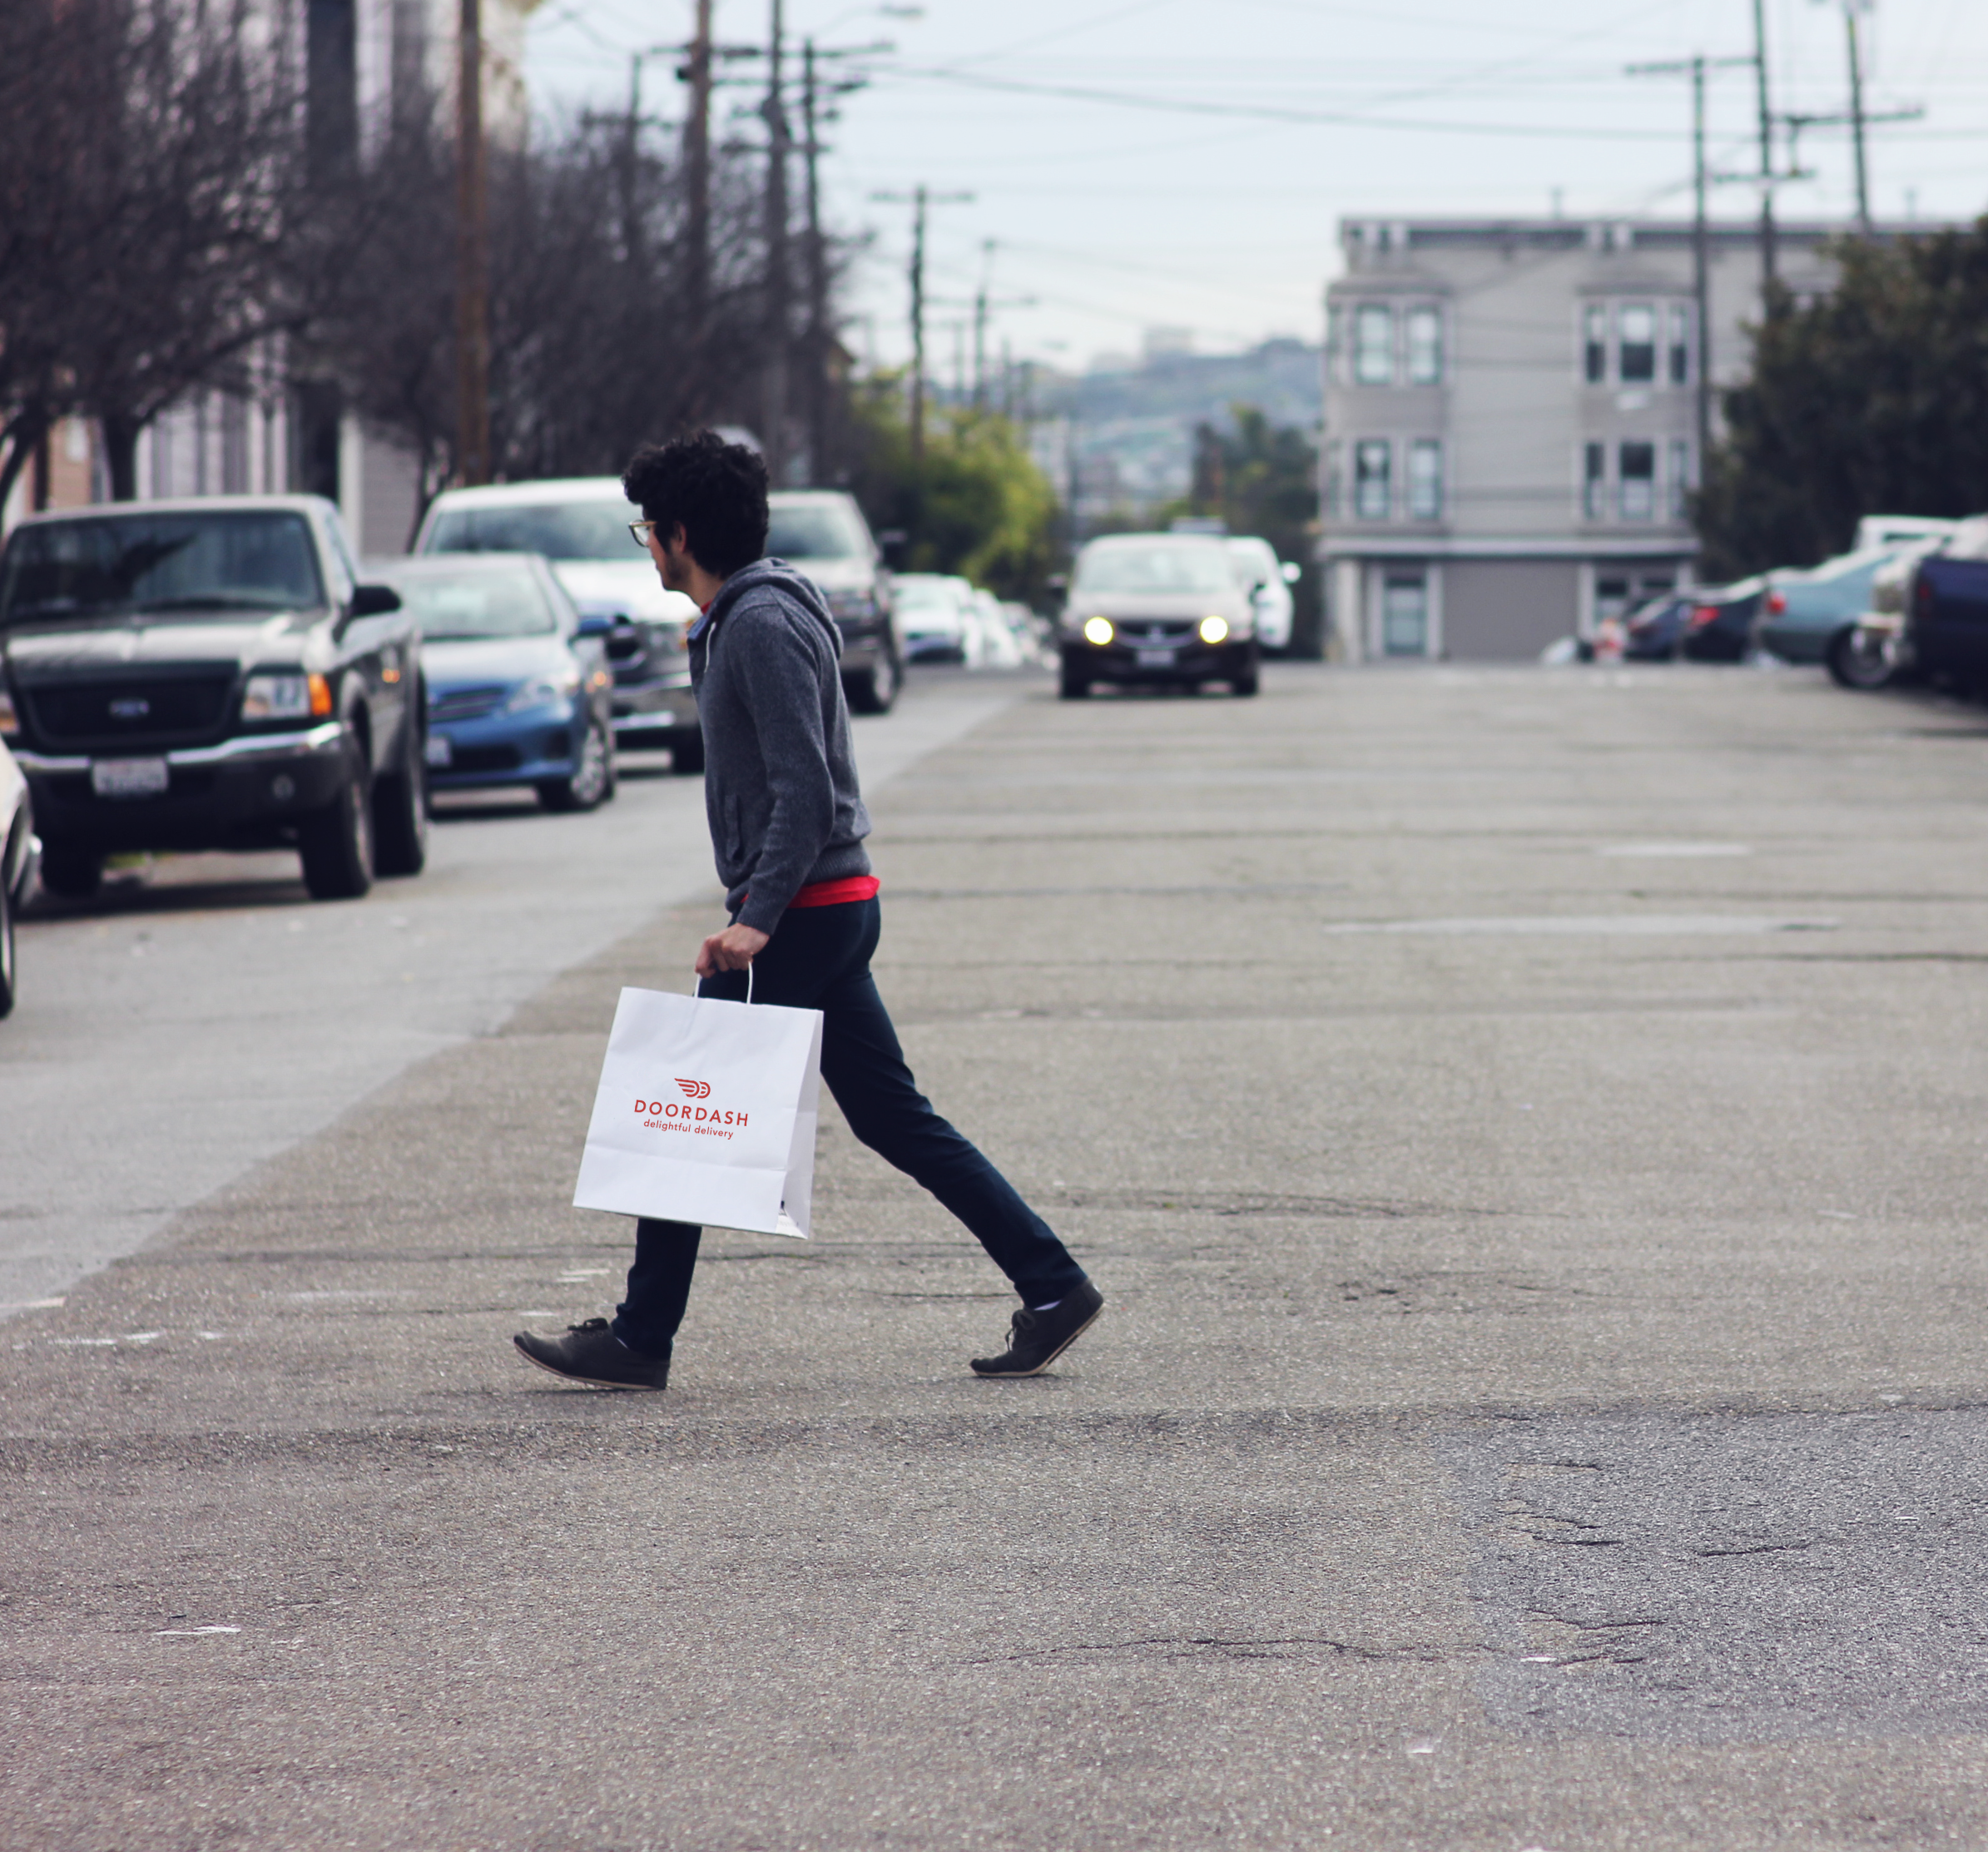 A DoorDash courier delivers a food order.